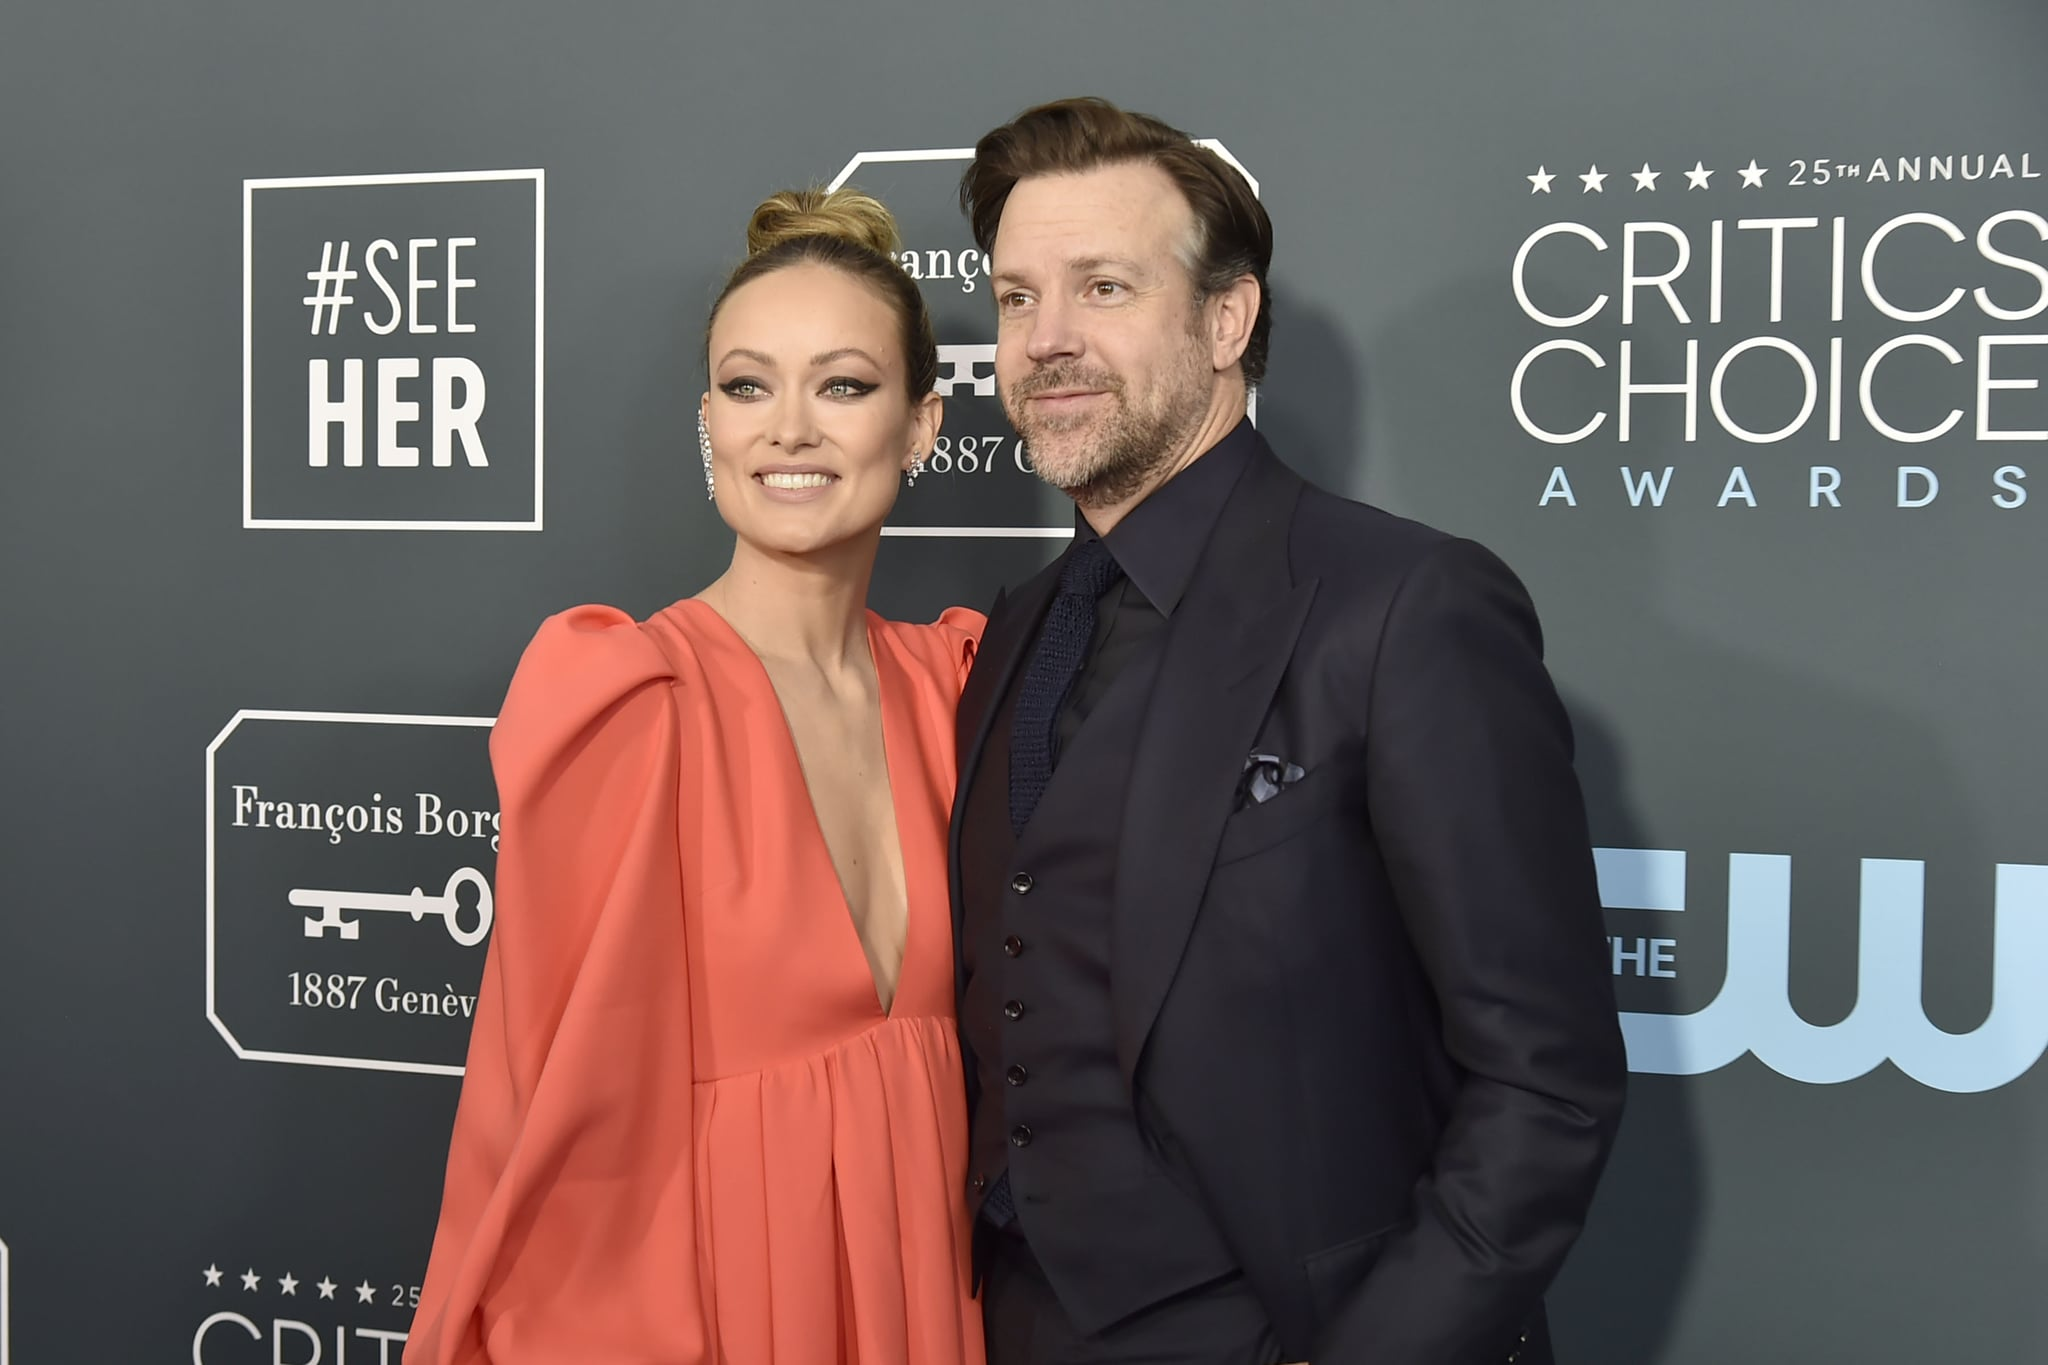 SANTA MONICA, CA - JANUARY 12: Olivia Wilde and Jason Sudeikis during the arrivals for the 25th Annual Critics' Choice Awards at Barker Hangar on January 12, 2020 in Santa Monica, CA. (Photo by David Crotty/Patrick McMullan via Getty Images)